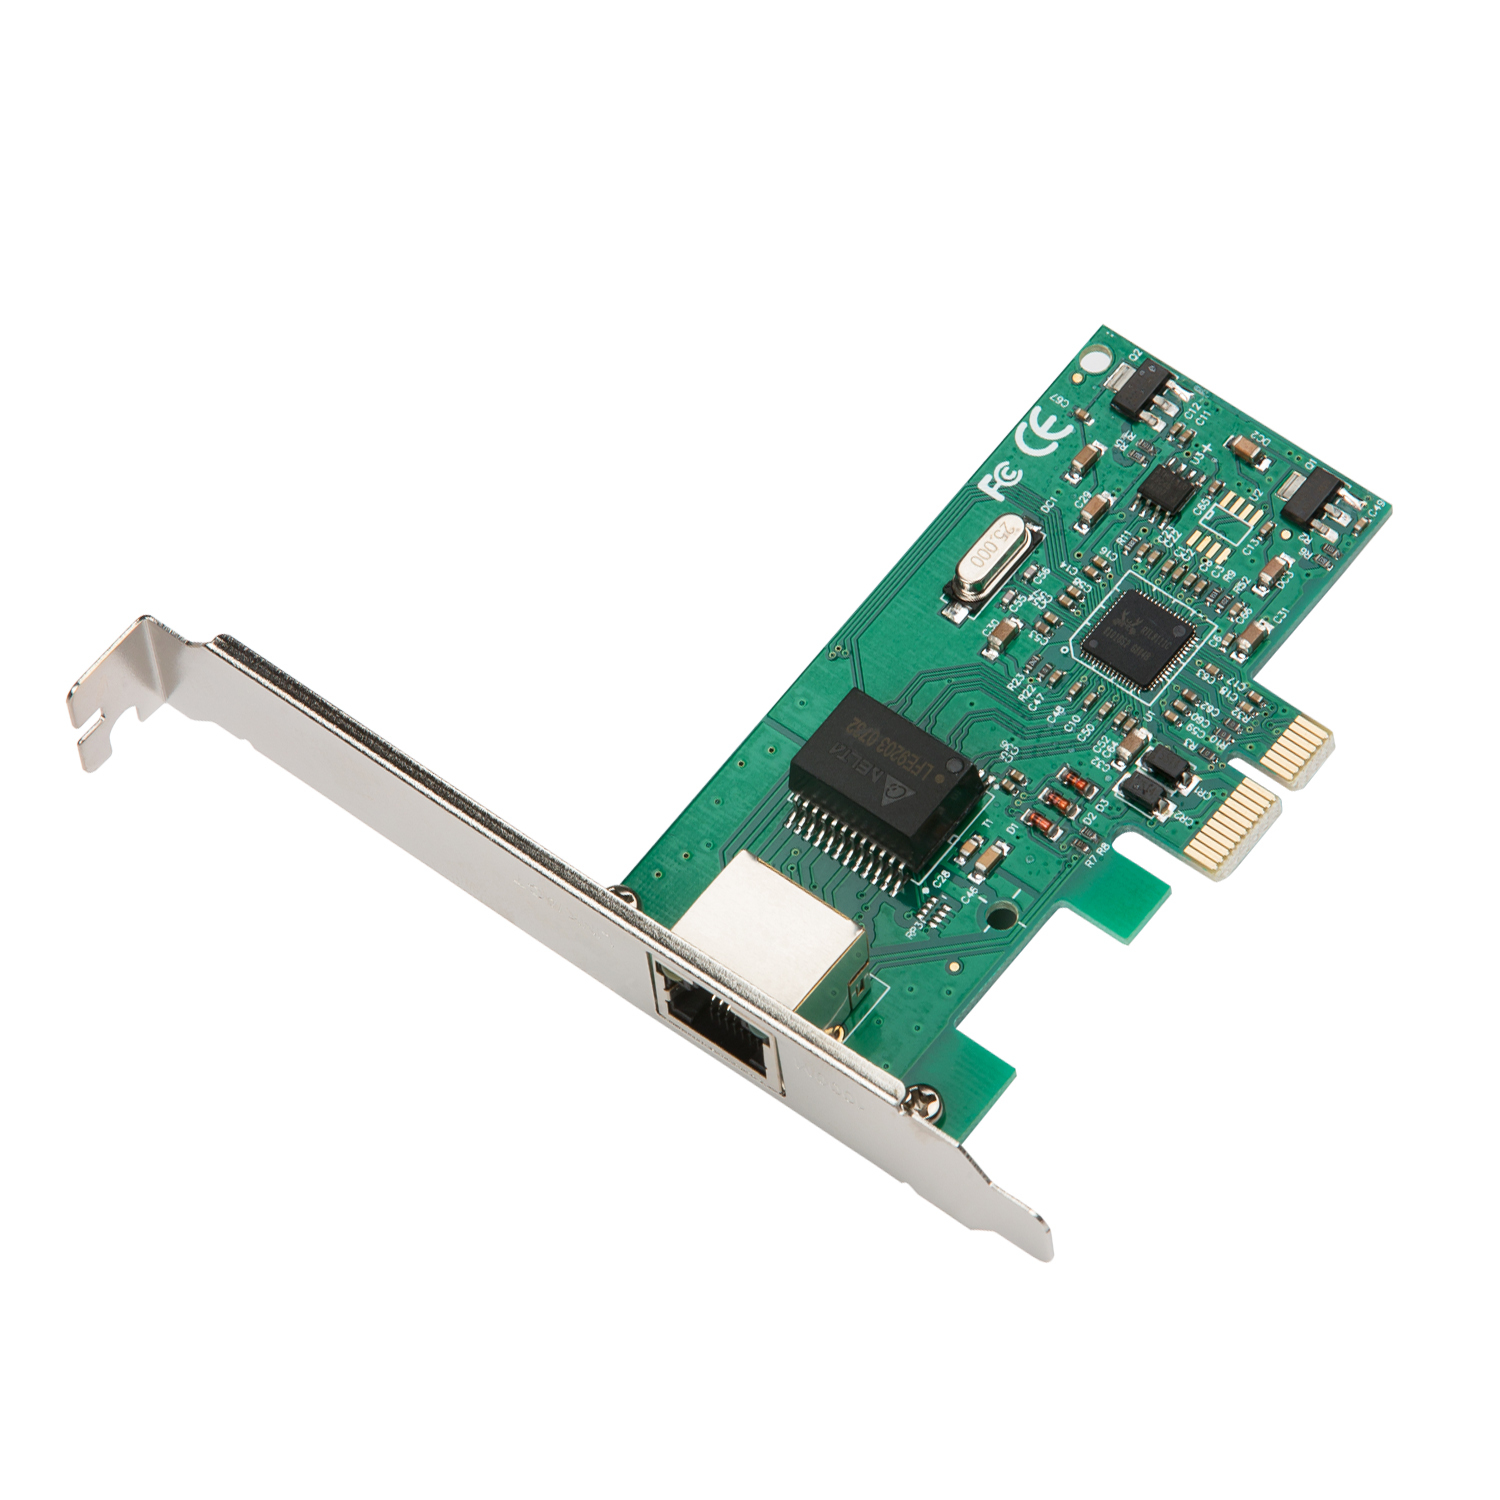 i-tec PCIe Gigabit Ethernet Card